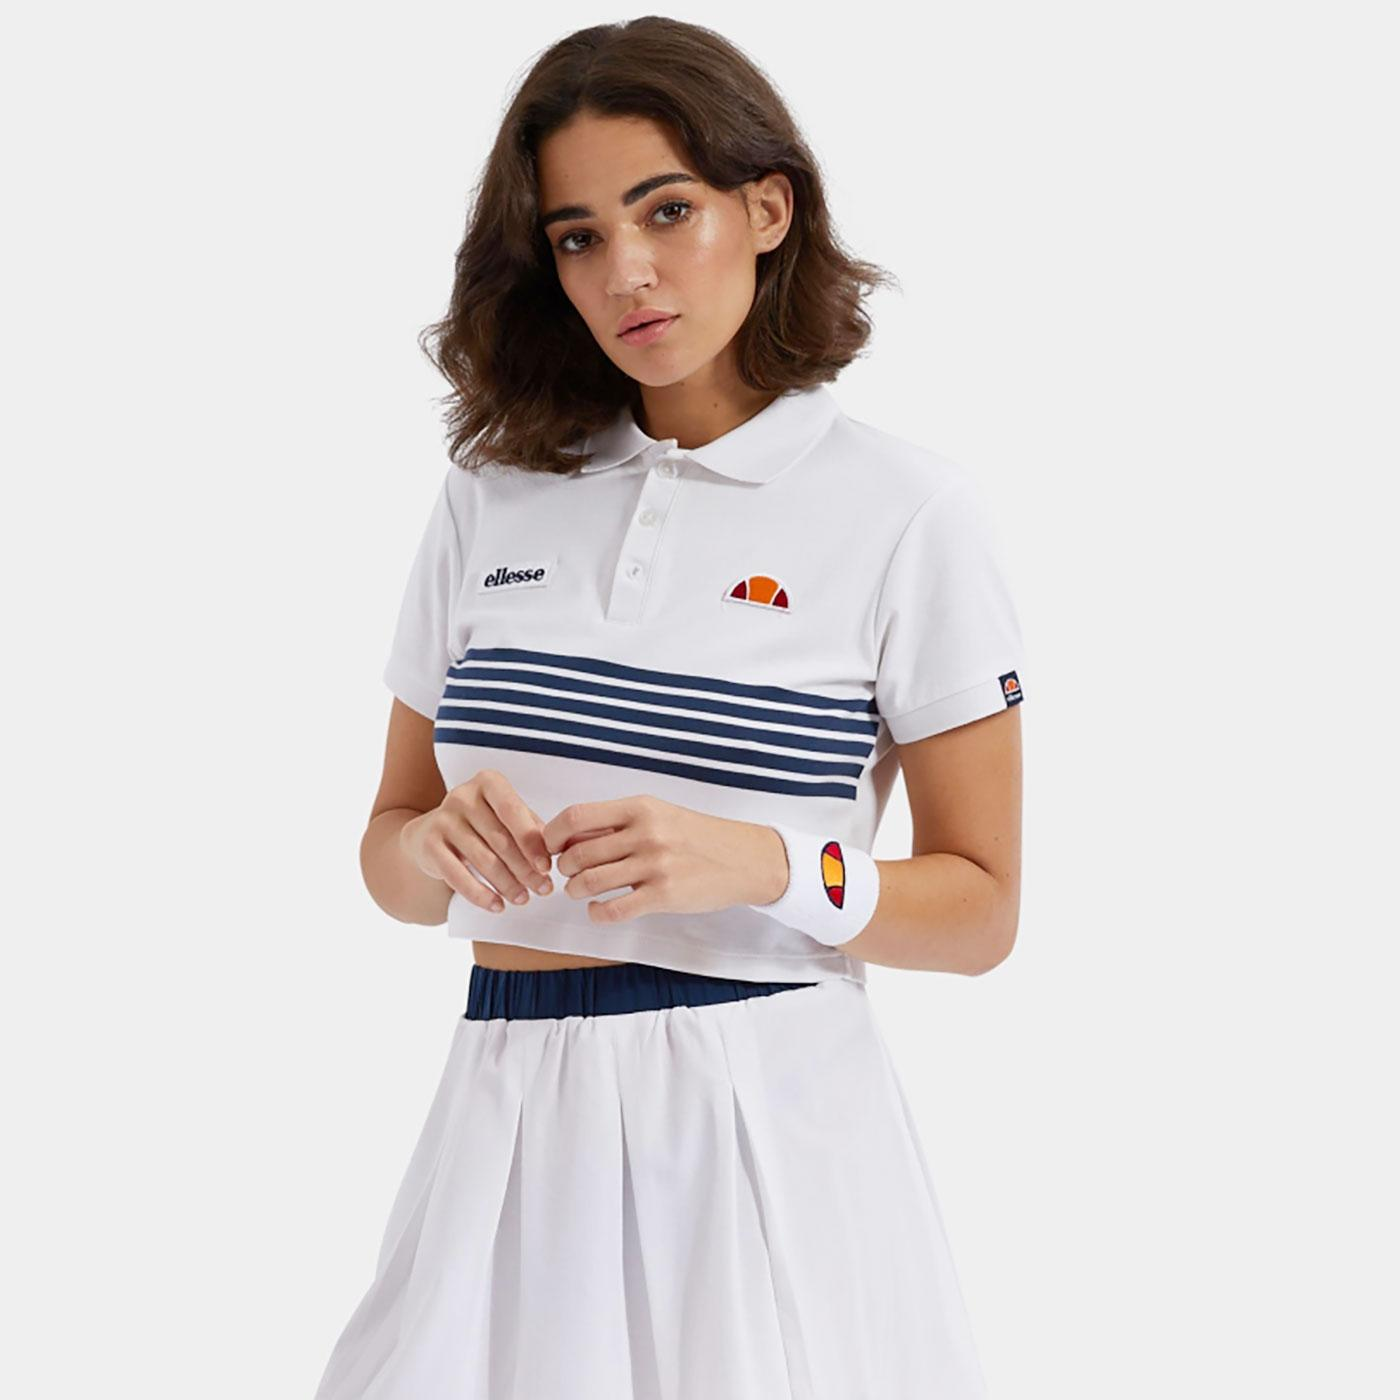 Annamaria ELLESSE Retro 80s Crop Polo Top (White)